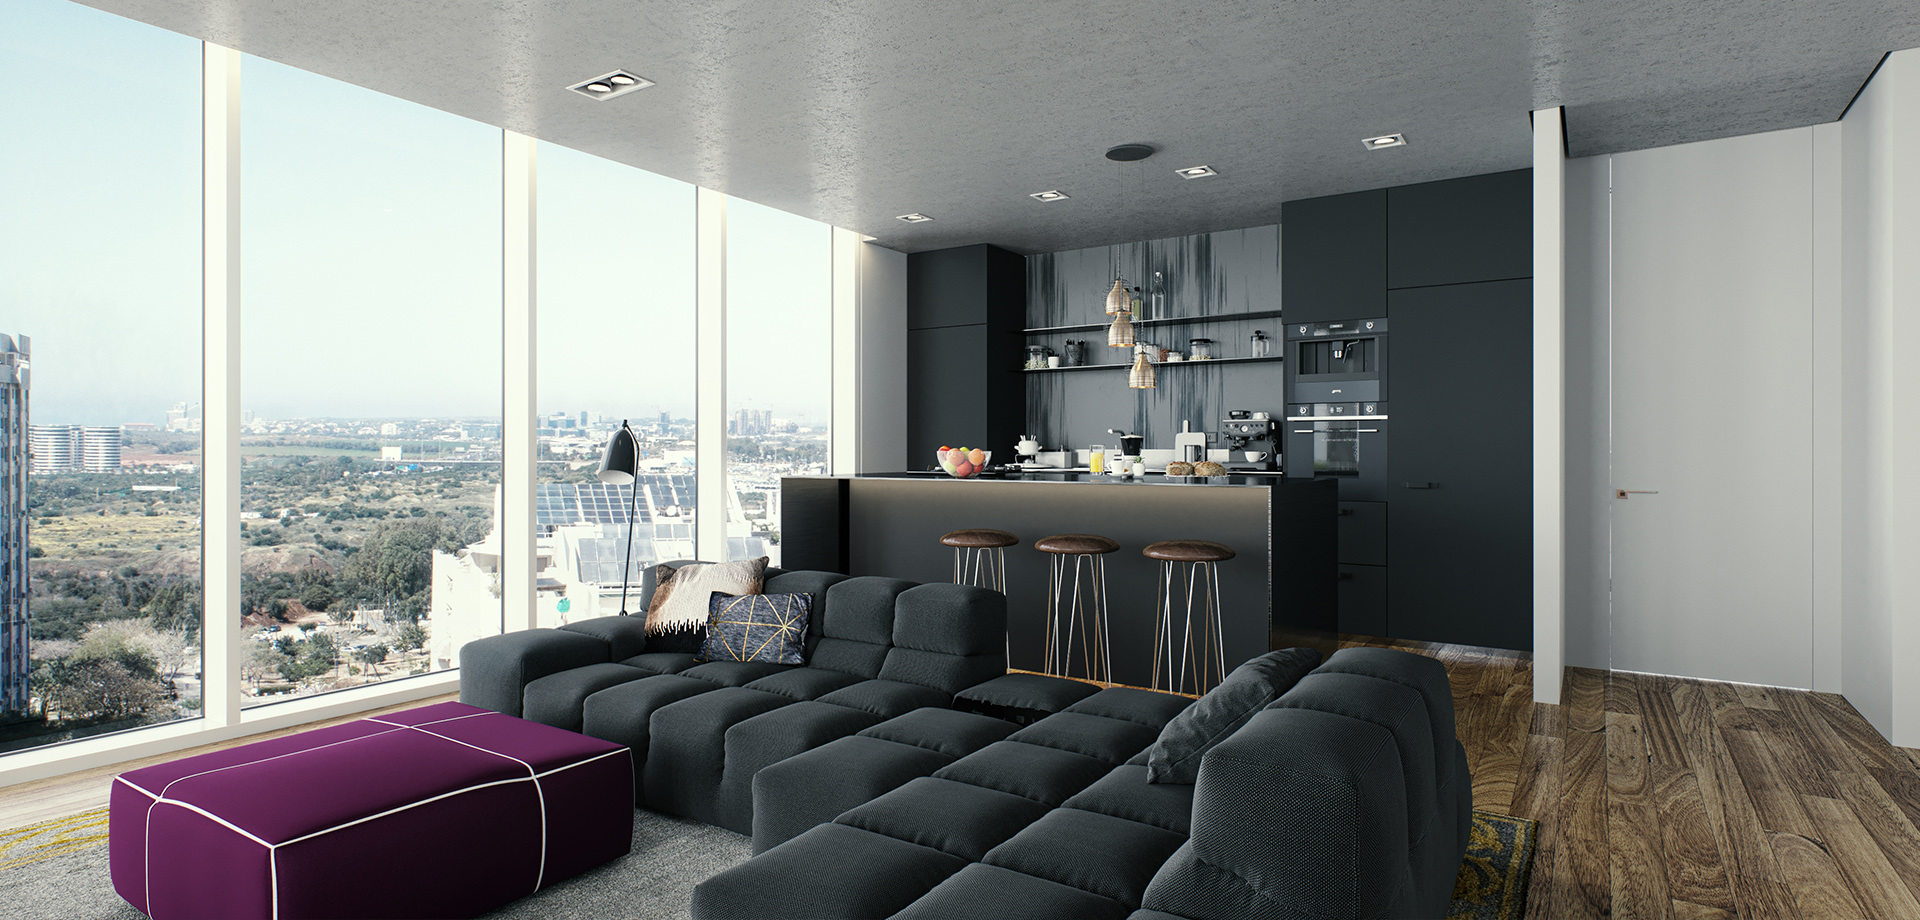 ahimeir-apartment-c01_00000